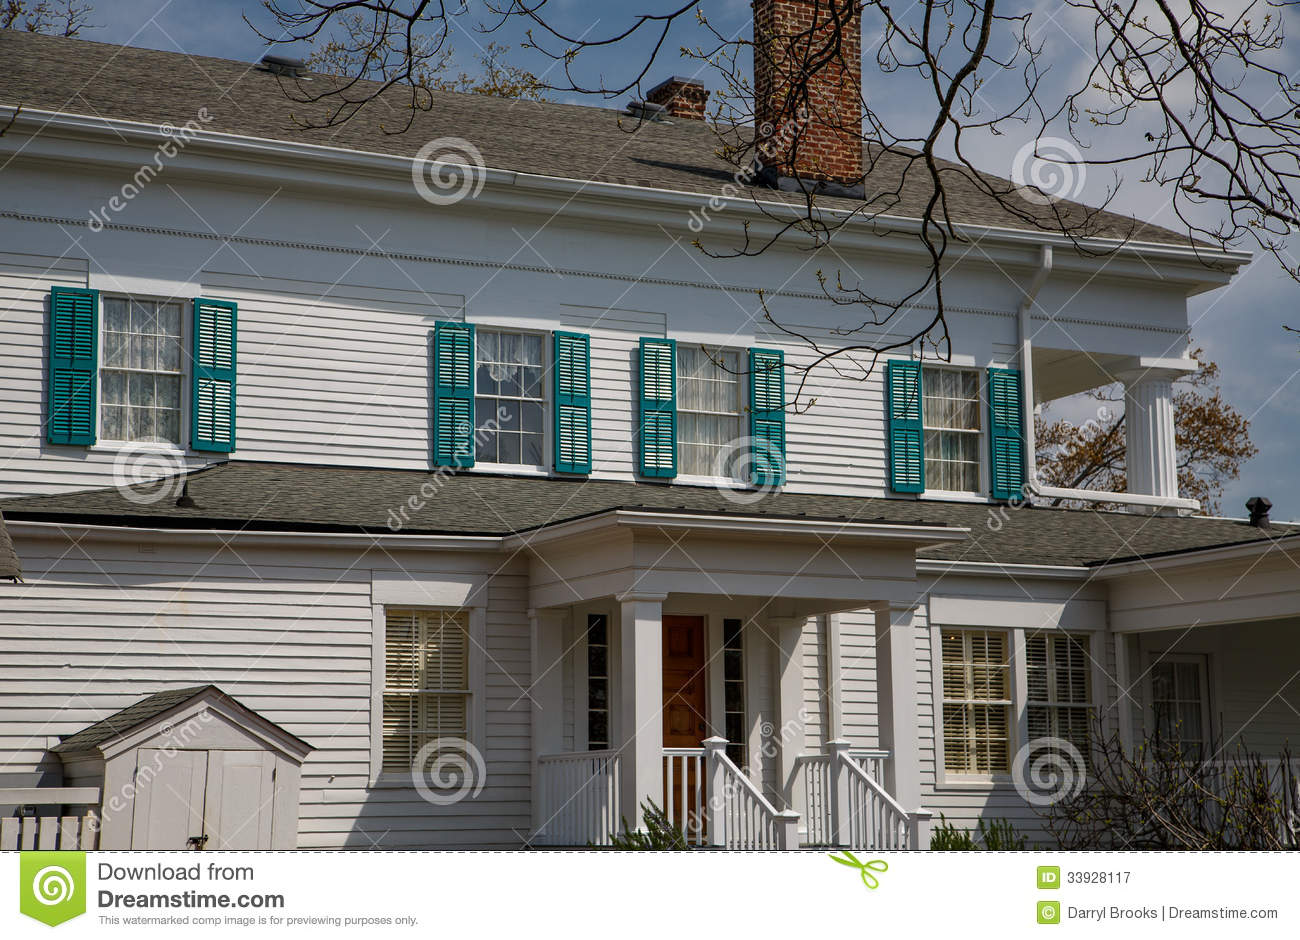 Green Shutters White Wood House Royalty Free Stock graphy Image 33